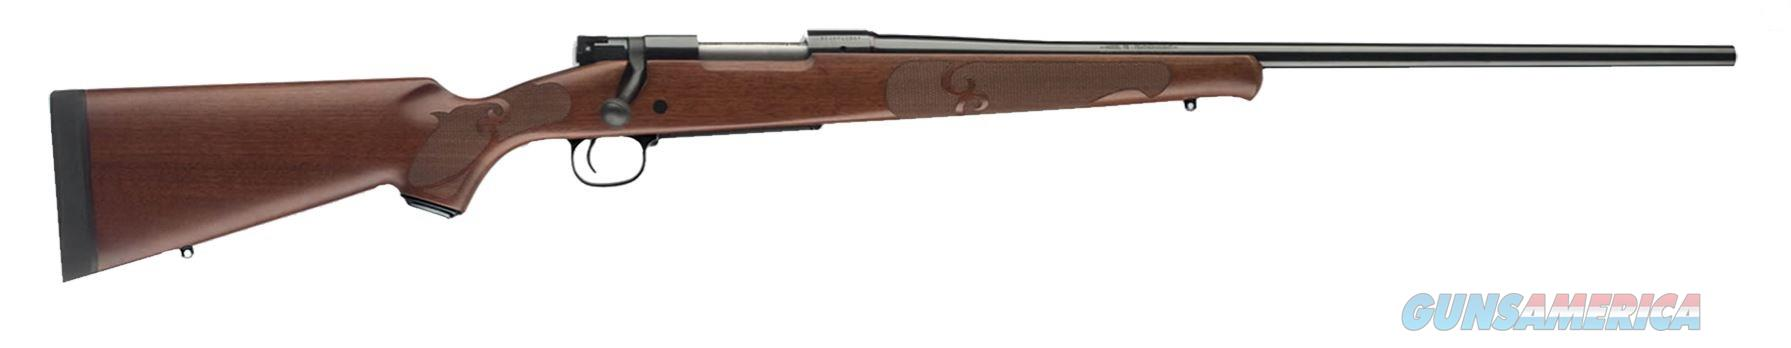 "Winchester Model 70 Featherweight Bolt-Action .270 Rifle 22"" 5+1 - New in Box  Guns > Rifles > Winchester Rifles - Modern Bolt/Auto/Single > Model 70 > Pre-64"